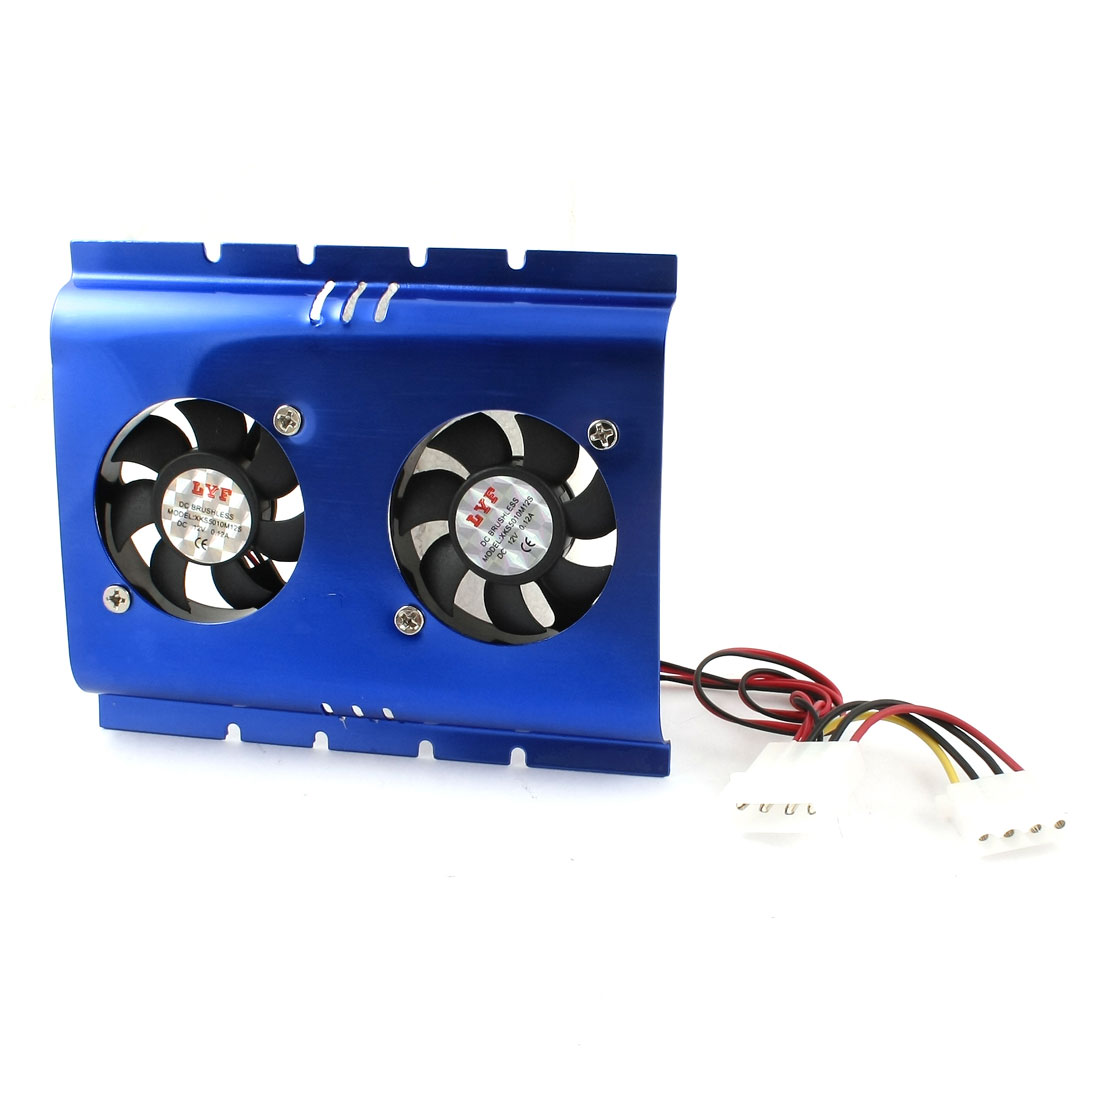 DC 12V Blue Double Fans Sleeve Bearing PC HDD Hard Disk Cooler